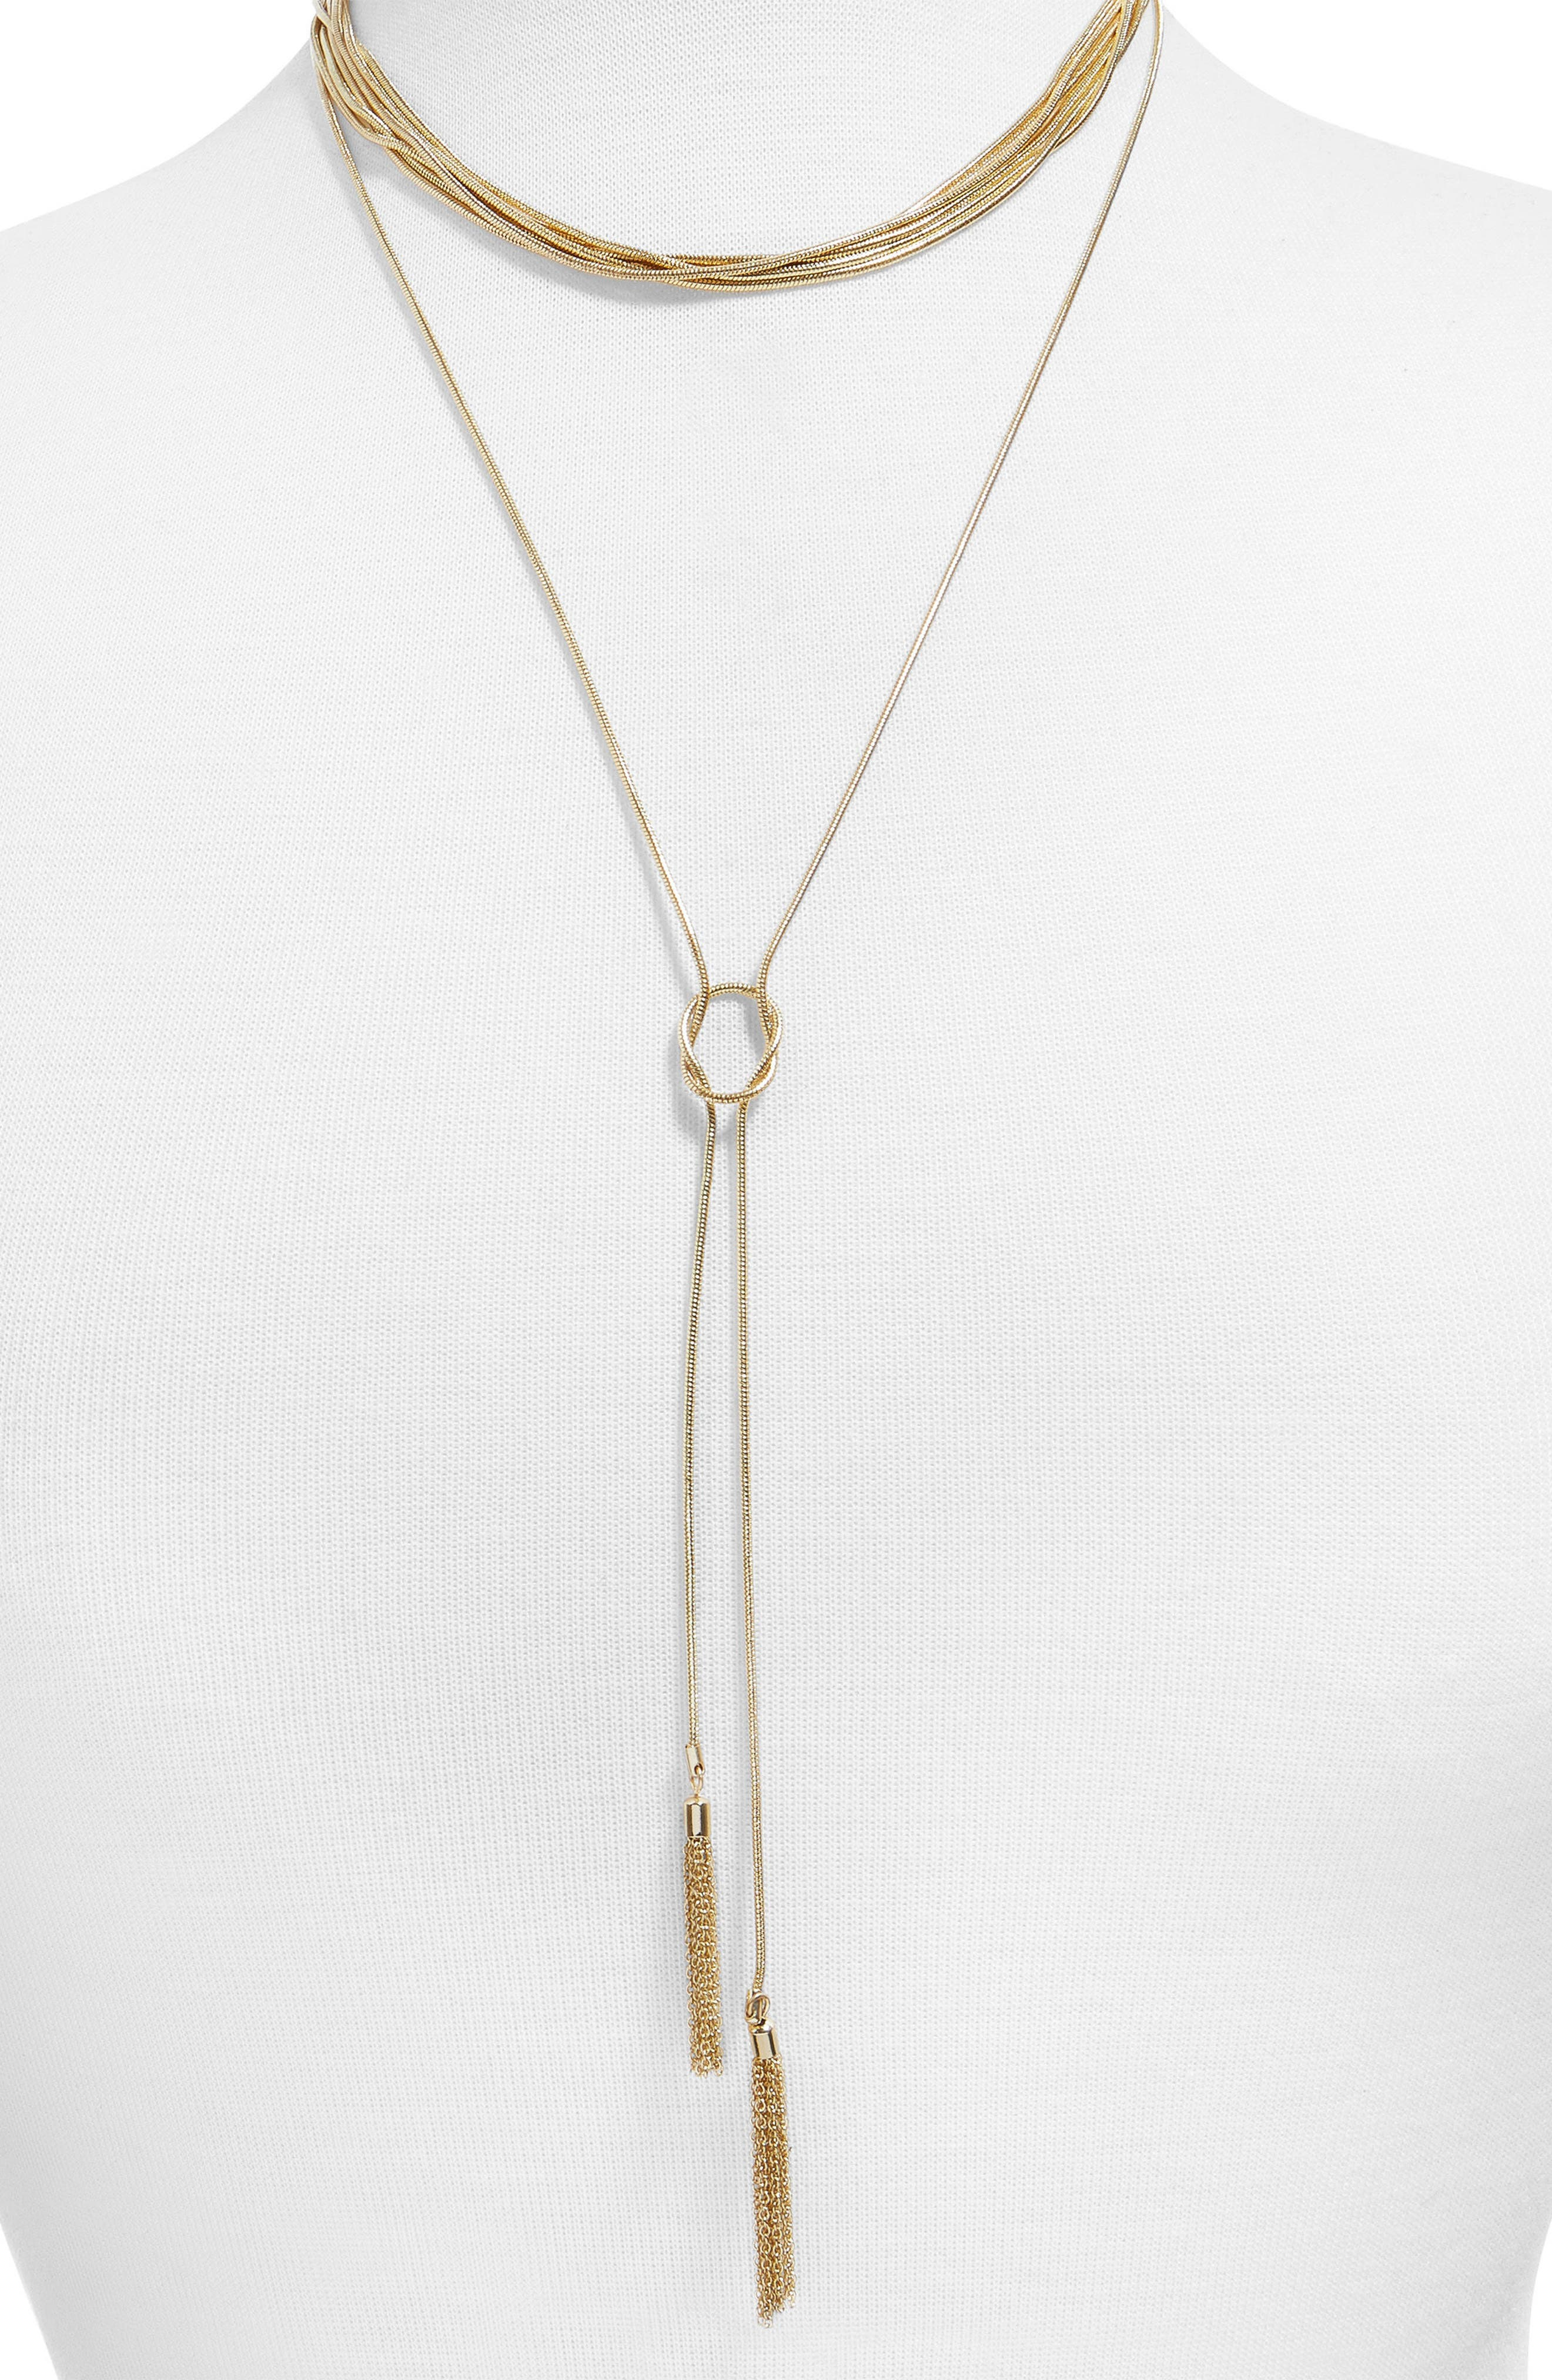 Delania Set of 2 Layered & Lariat Necklaces,                         Main,                         color, Gold